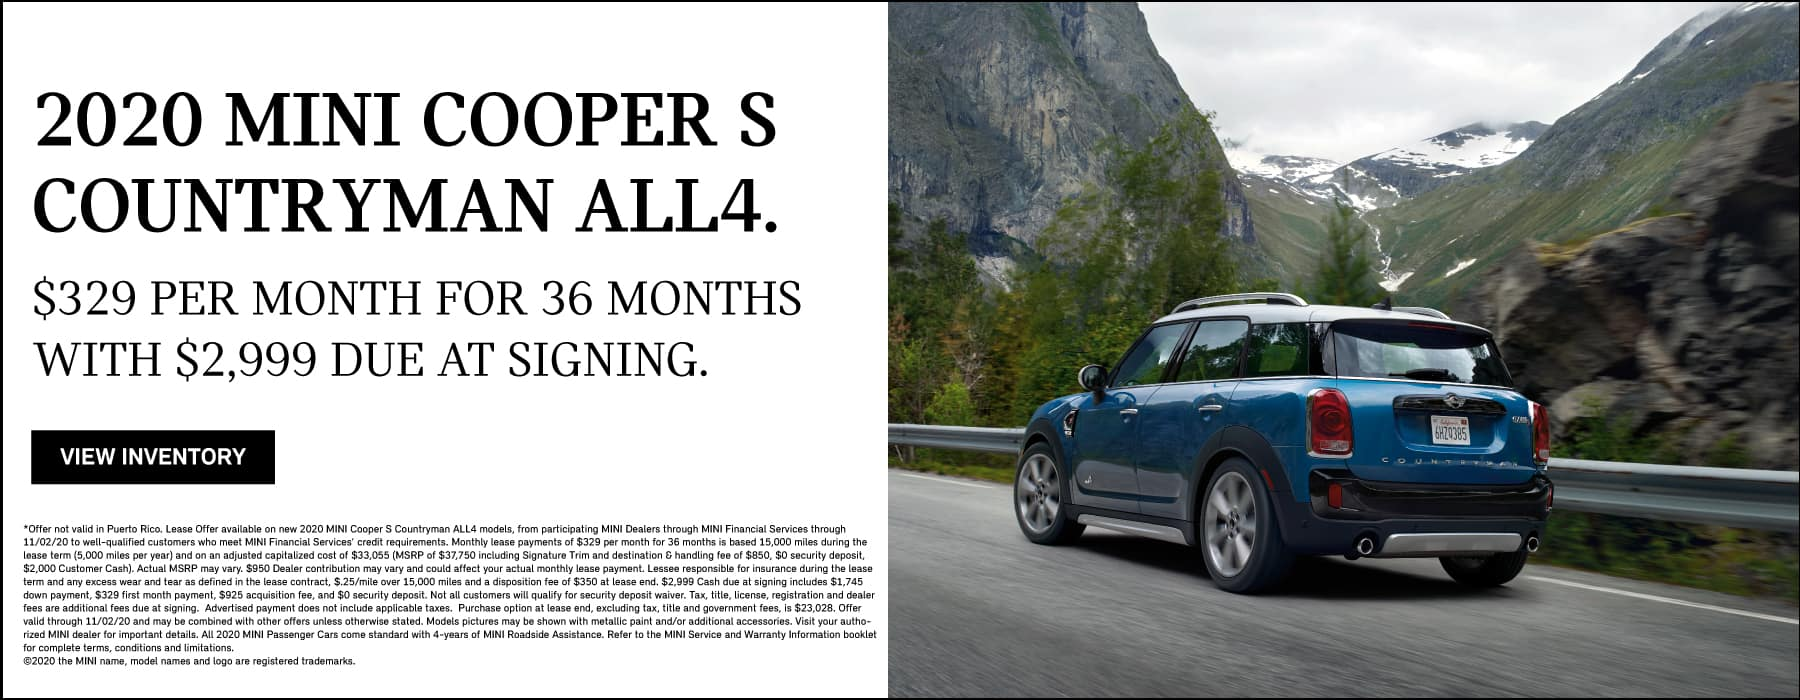 MINI COOPER S COUTRYMAN ALL4. $329 per month for 36 months.